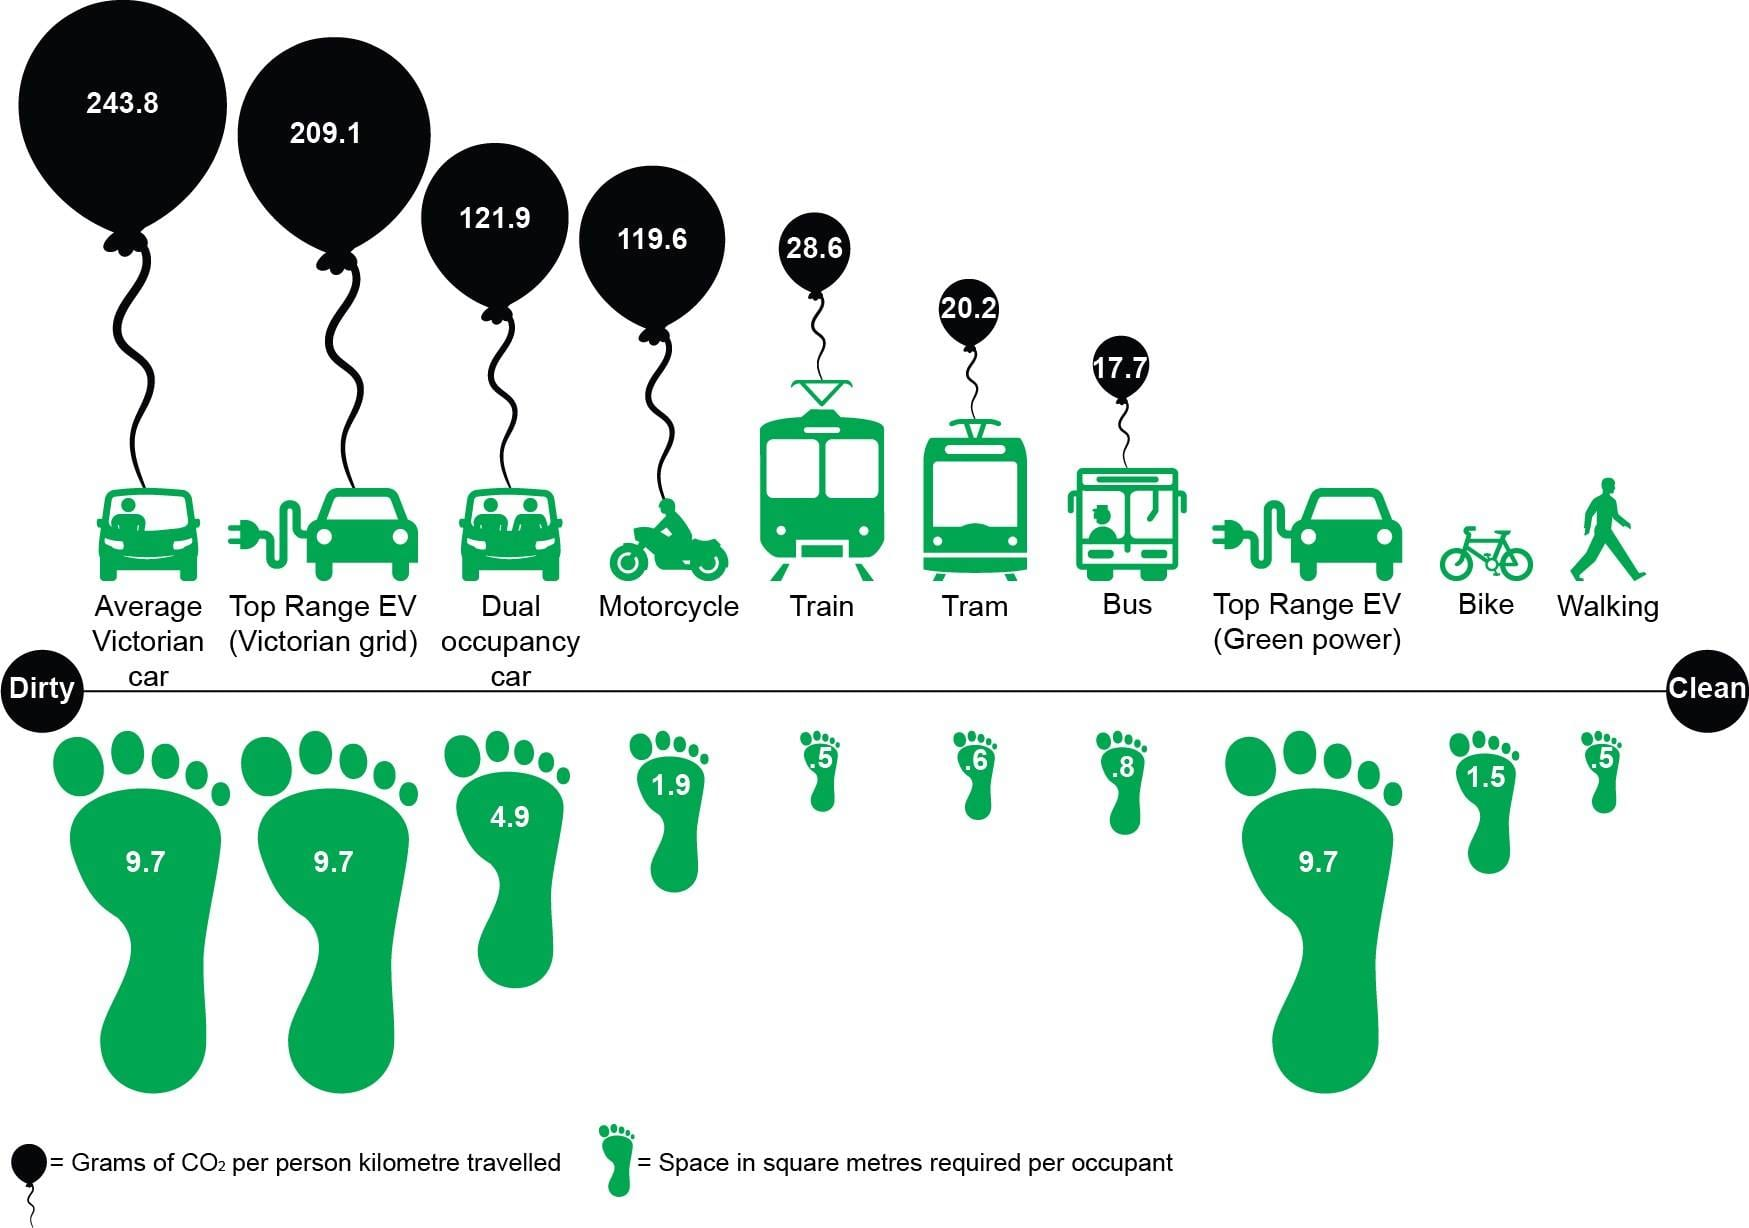 Transport emissions and space - we have transition targets for one but not the other